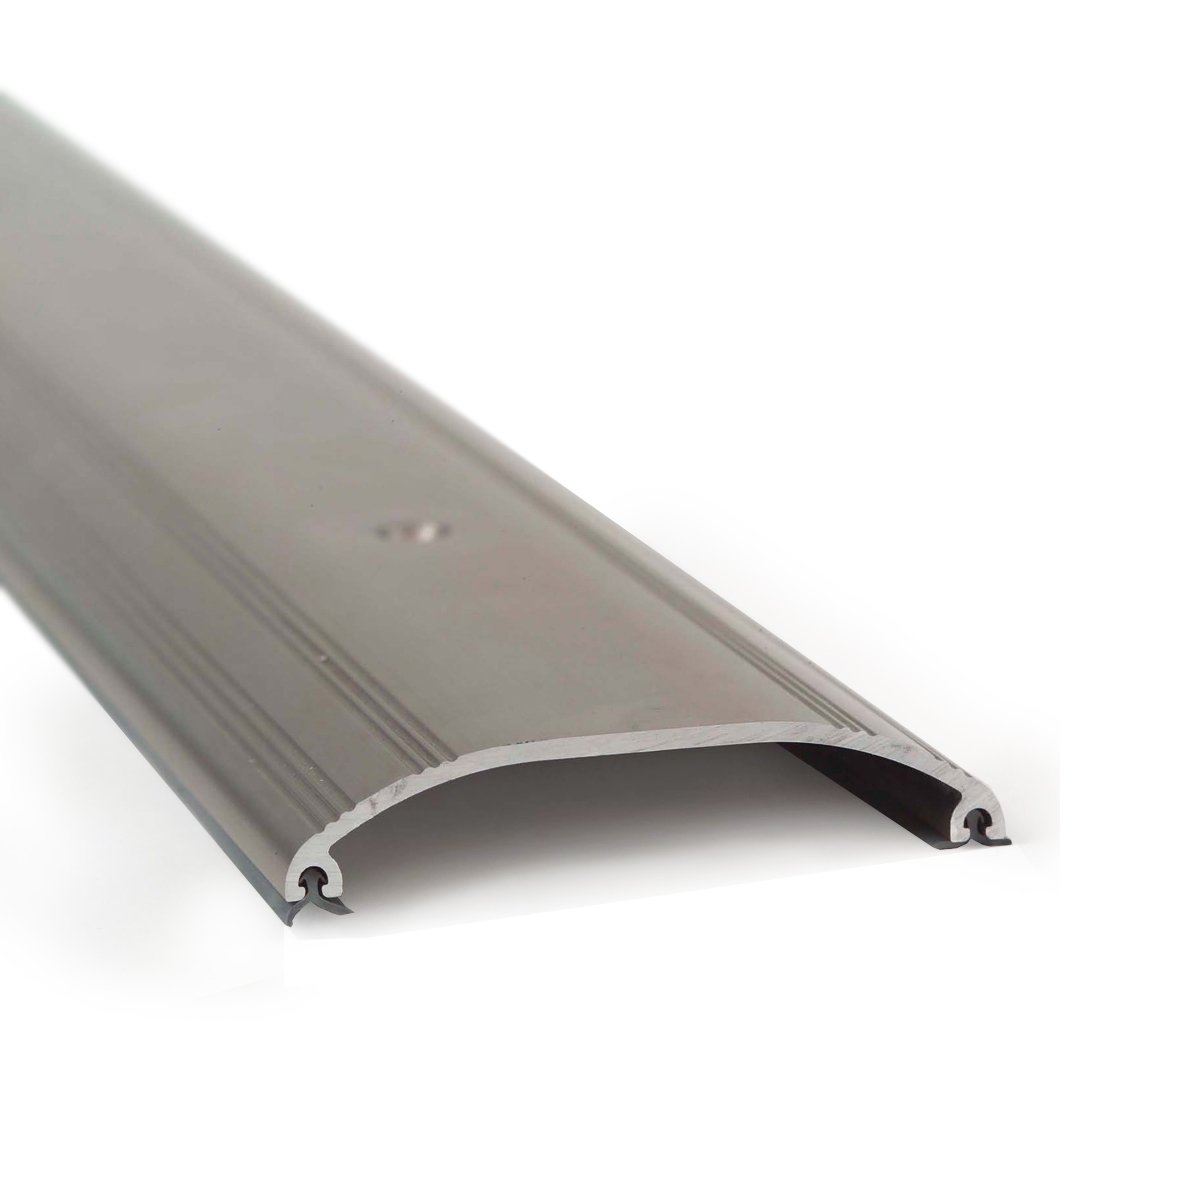 M-D Building Products 25736 5/8-Inch by 3-1/2-Inch by 72-Inch Low Dome Top Threshold